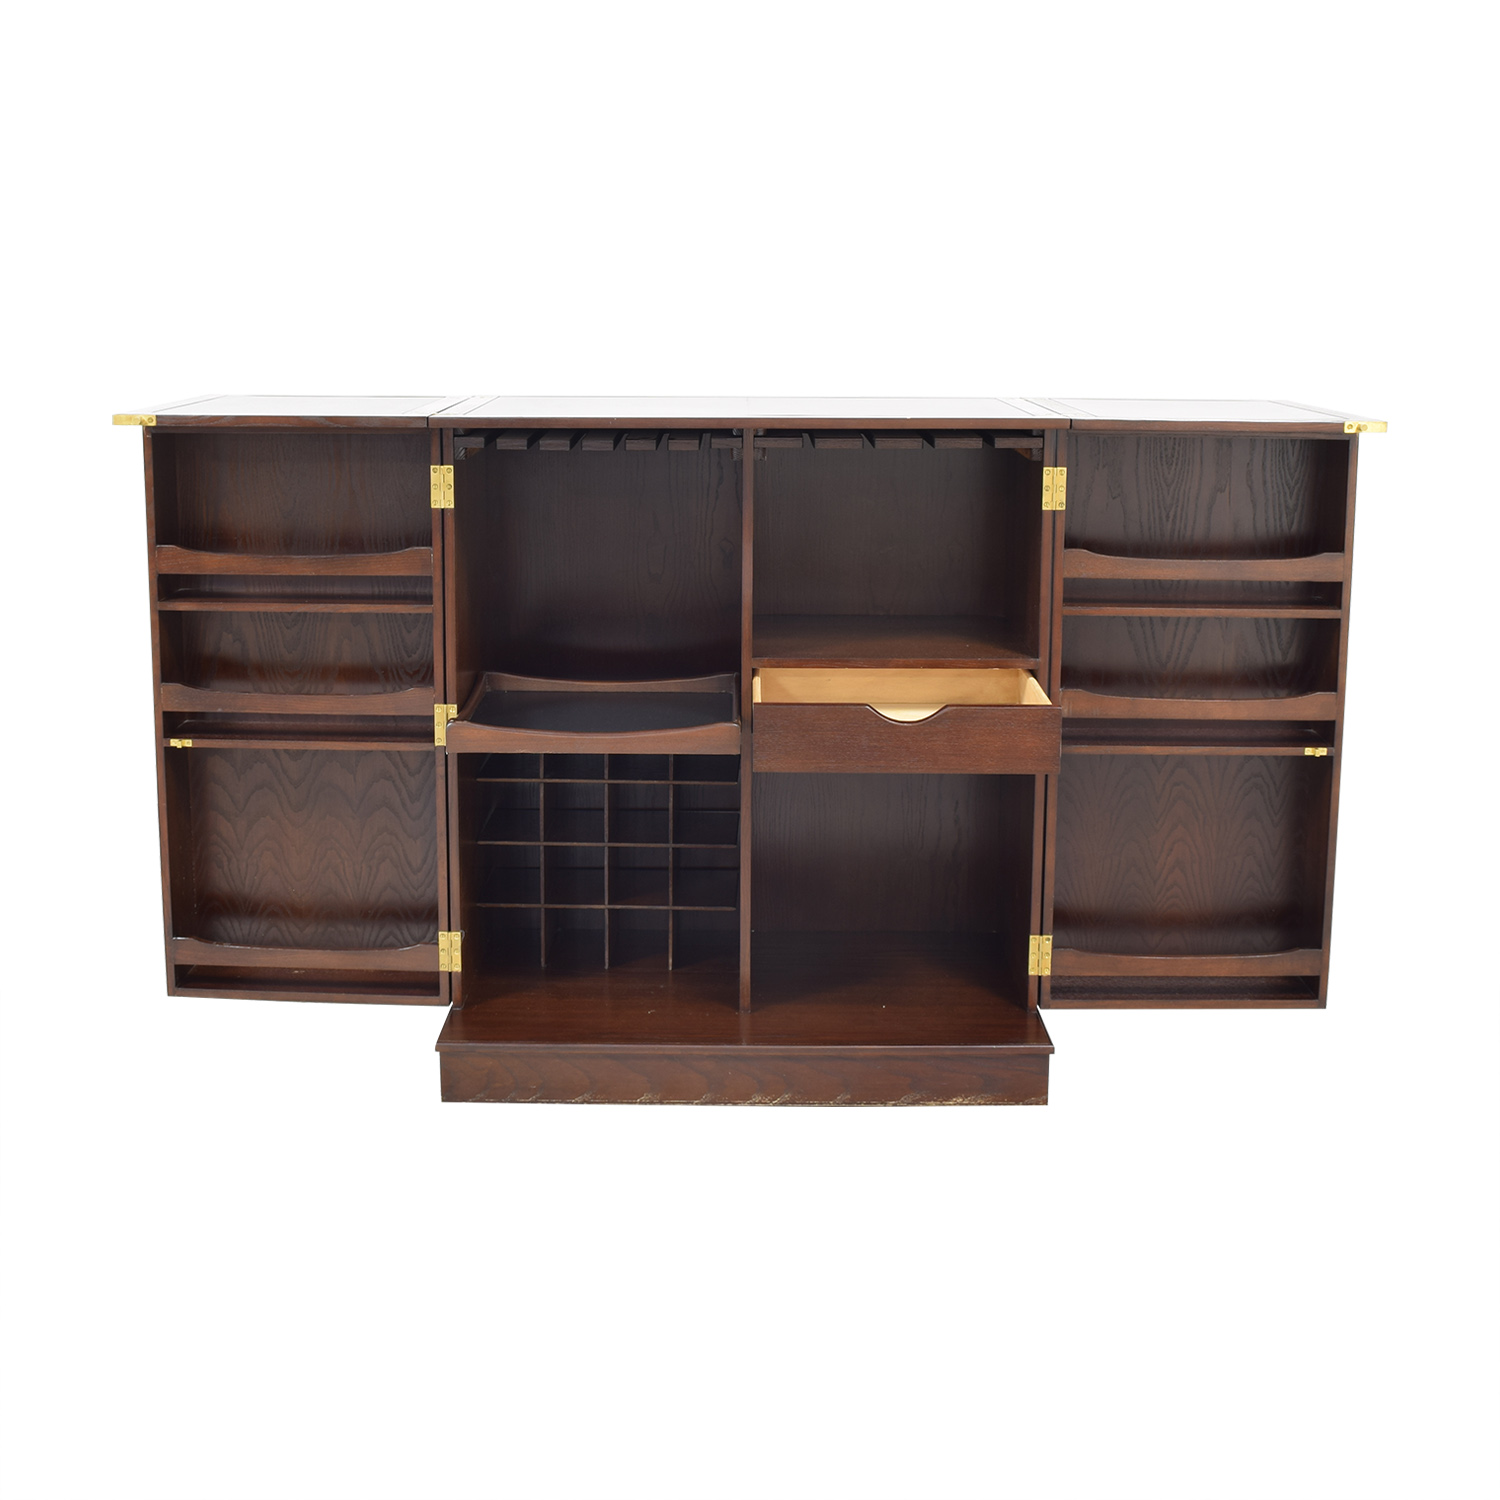 Crate & Barrel Crate & Barrel Foldaway Bar Cabinet for sale